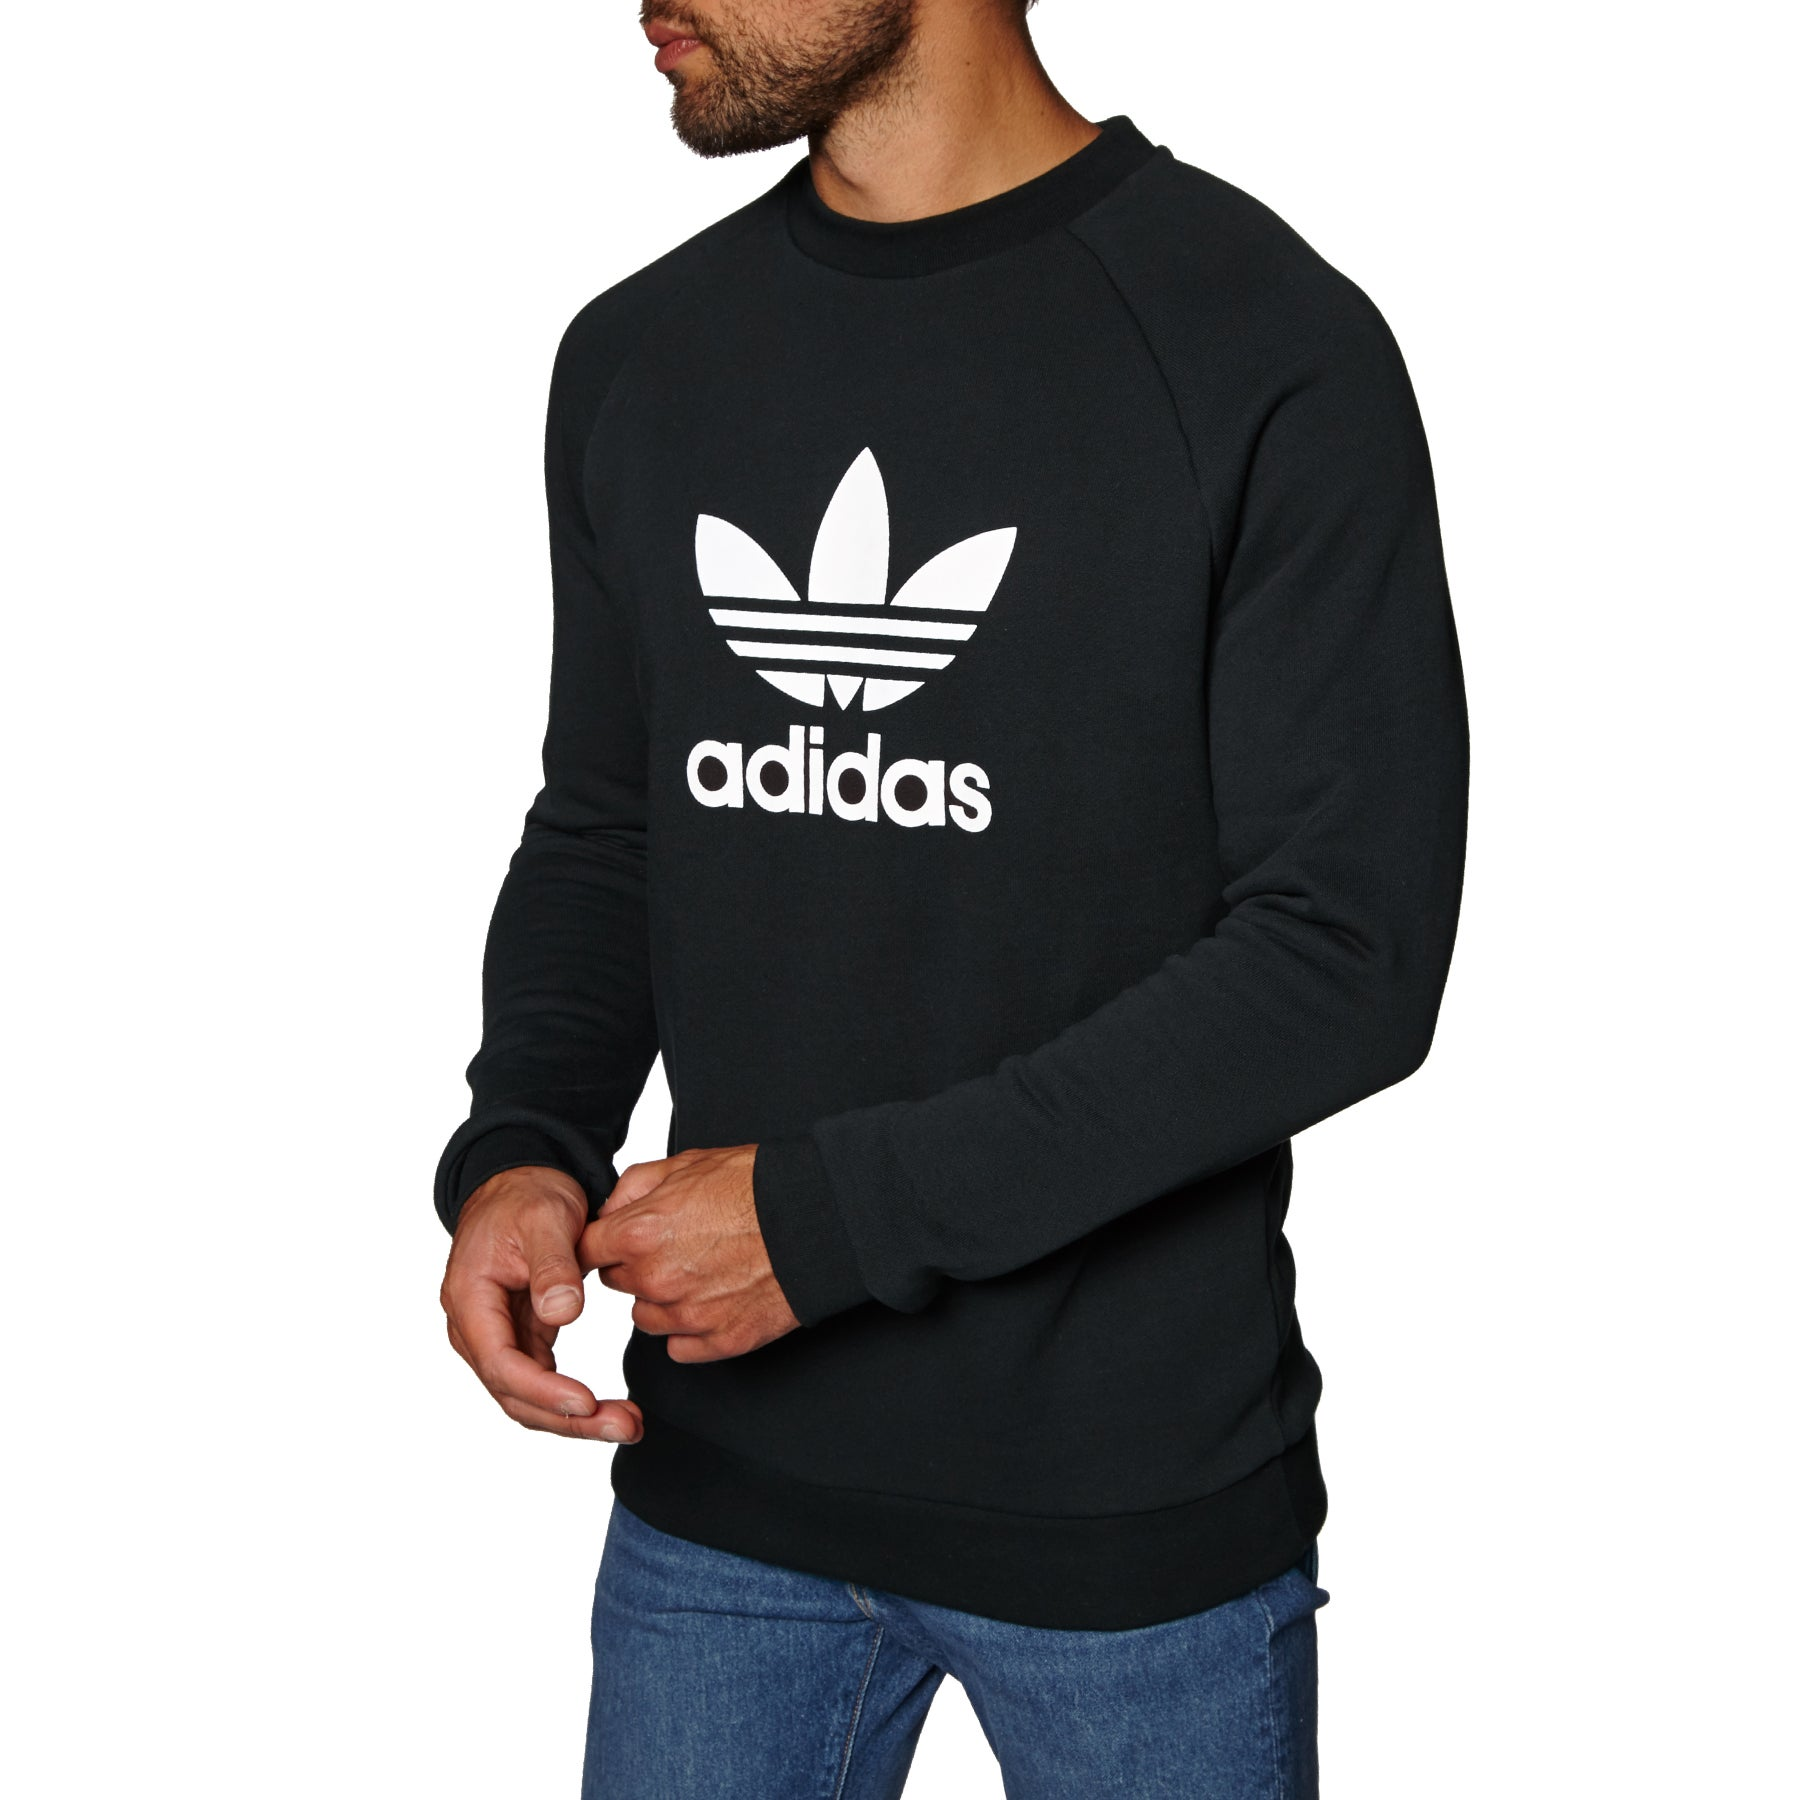 1aaaa3338d3035 Adidas Originals Trefoil Crew Sweater available from Surfdome